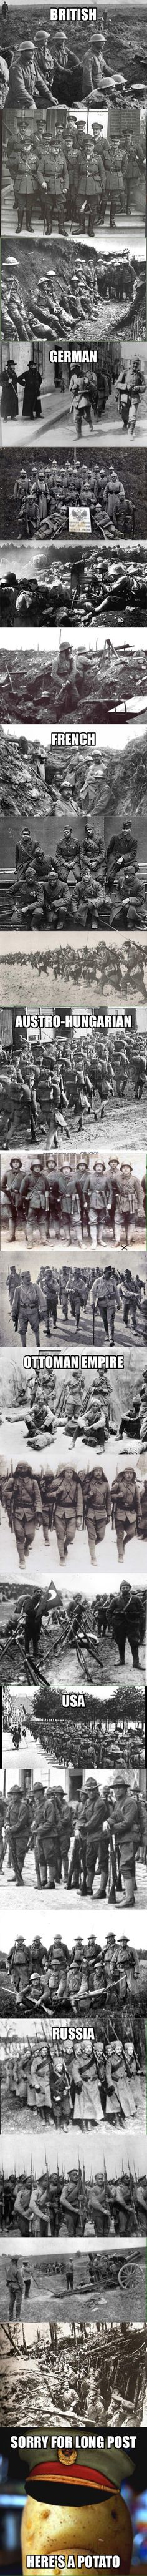 Armies of WWI